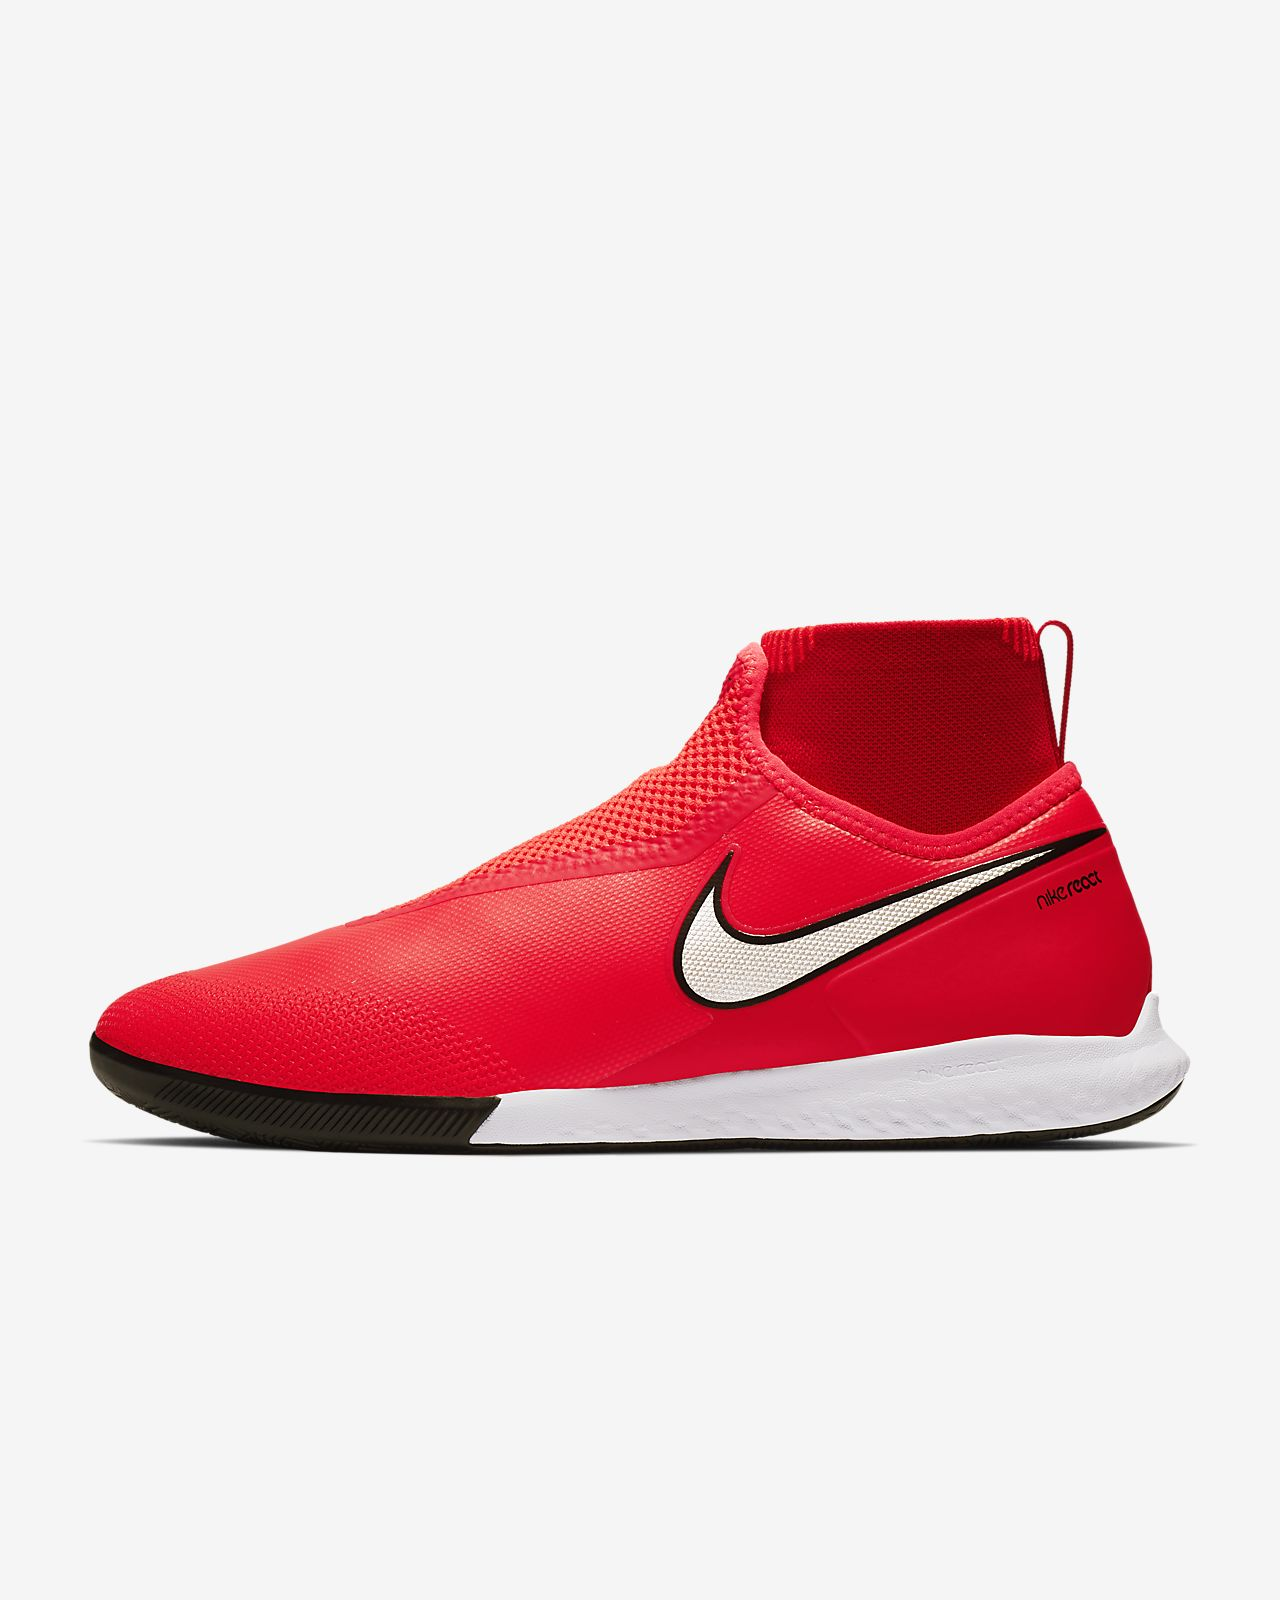 Nike React PhantomVSN Pro Dynamic Fit Game Over IC Zaalvoetbalschoen